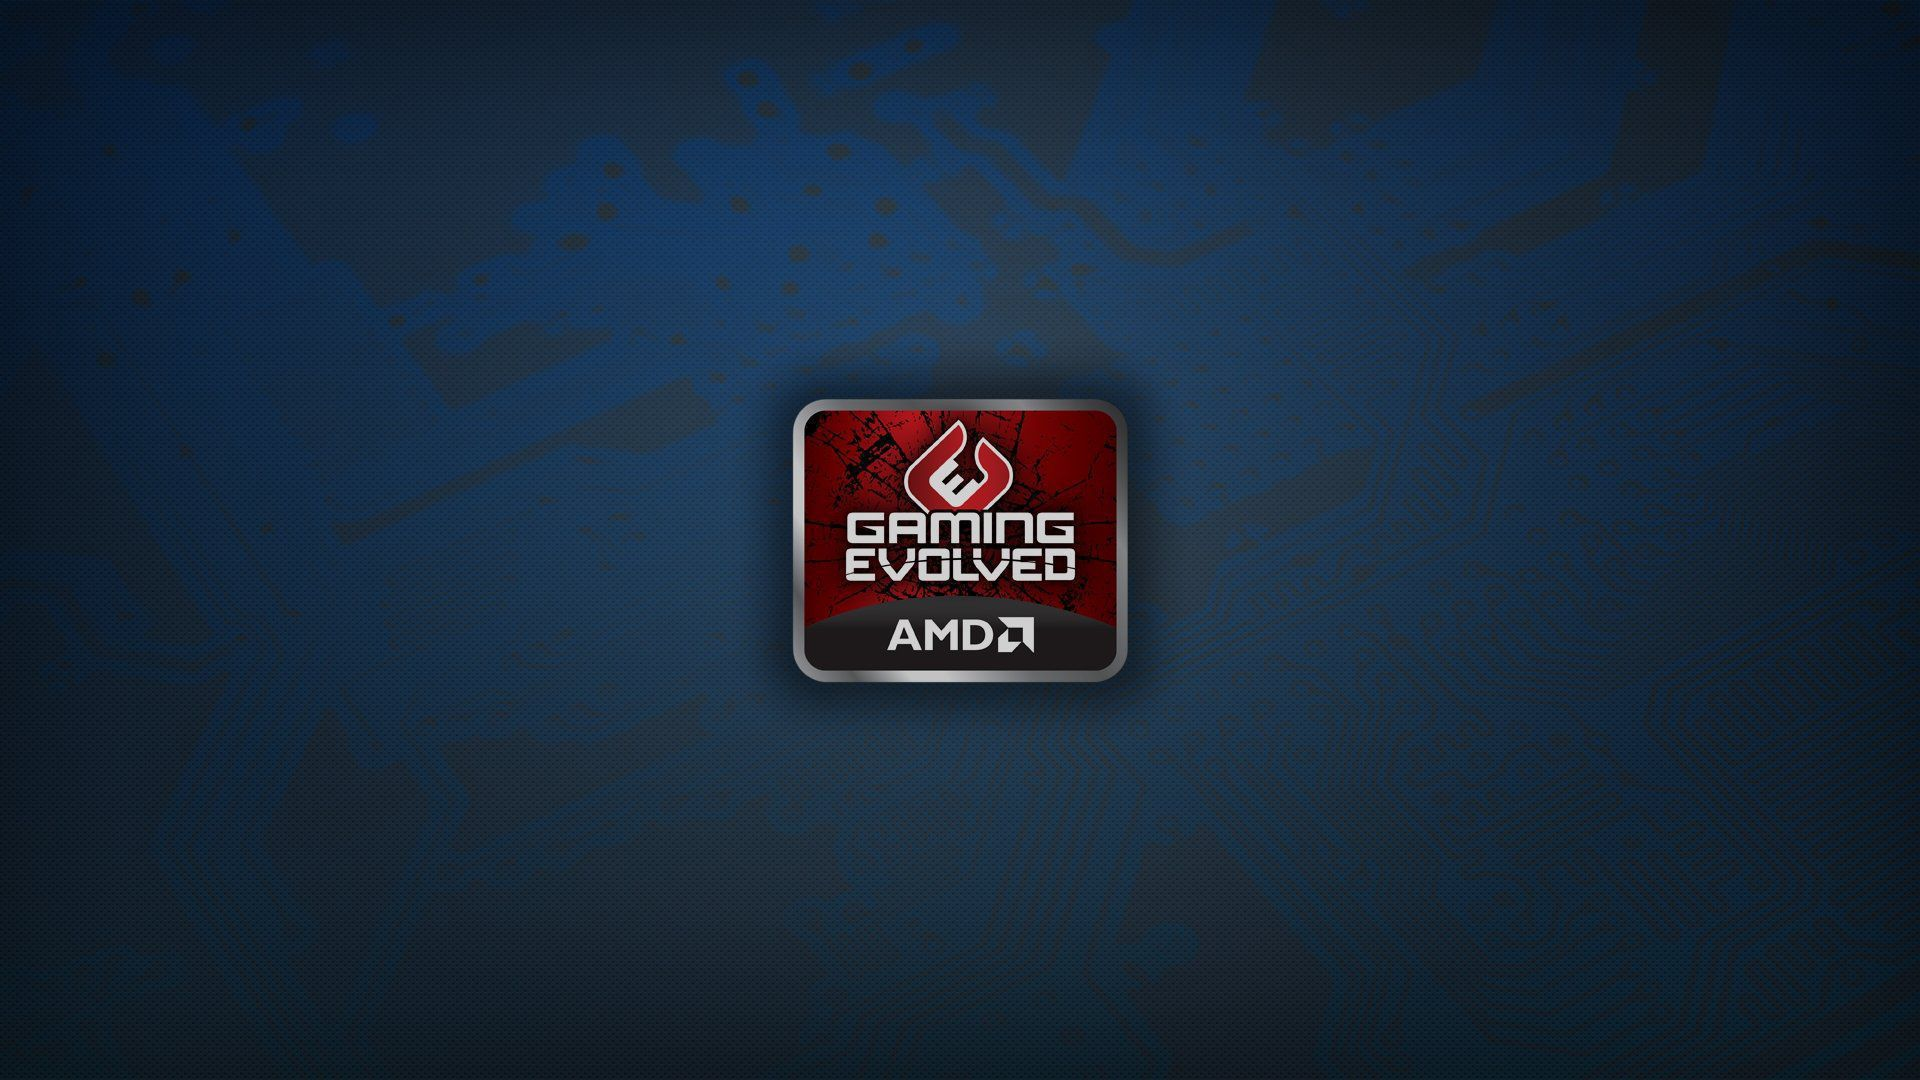 Amd Gaming Evolved Photos